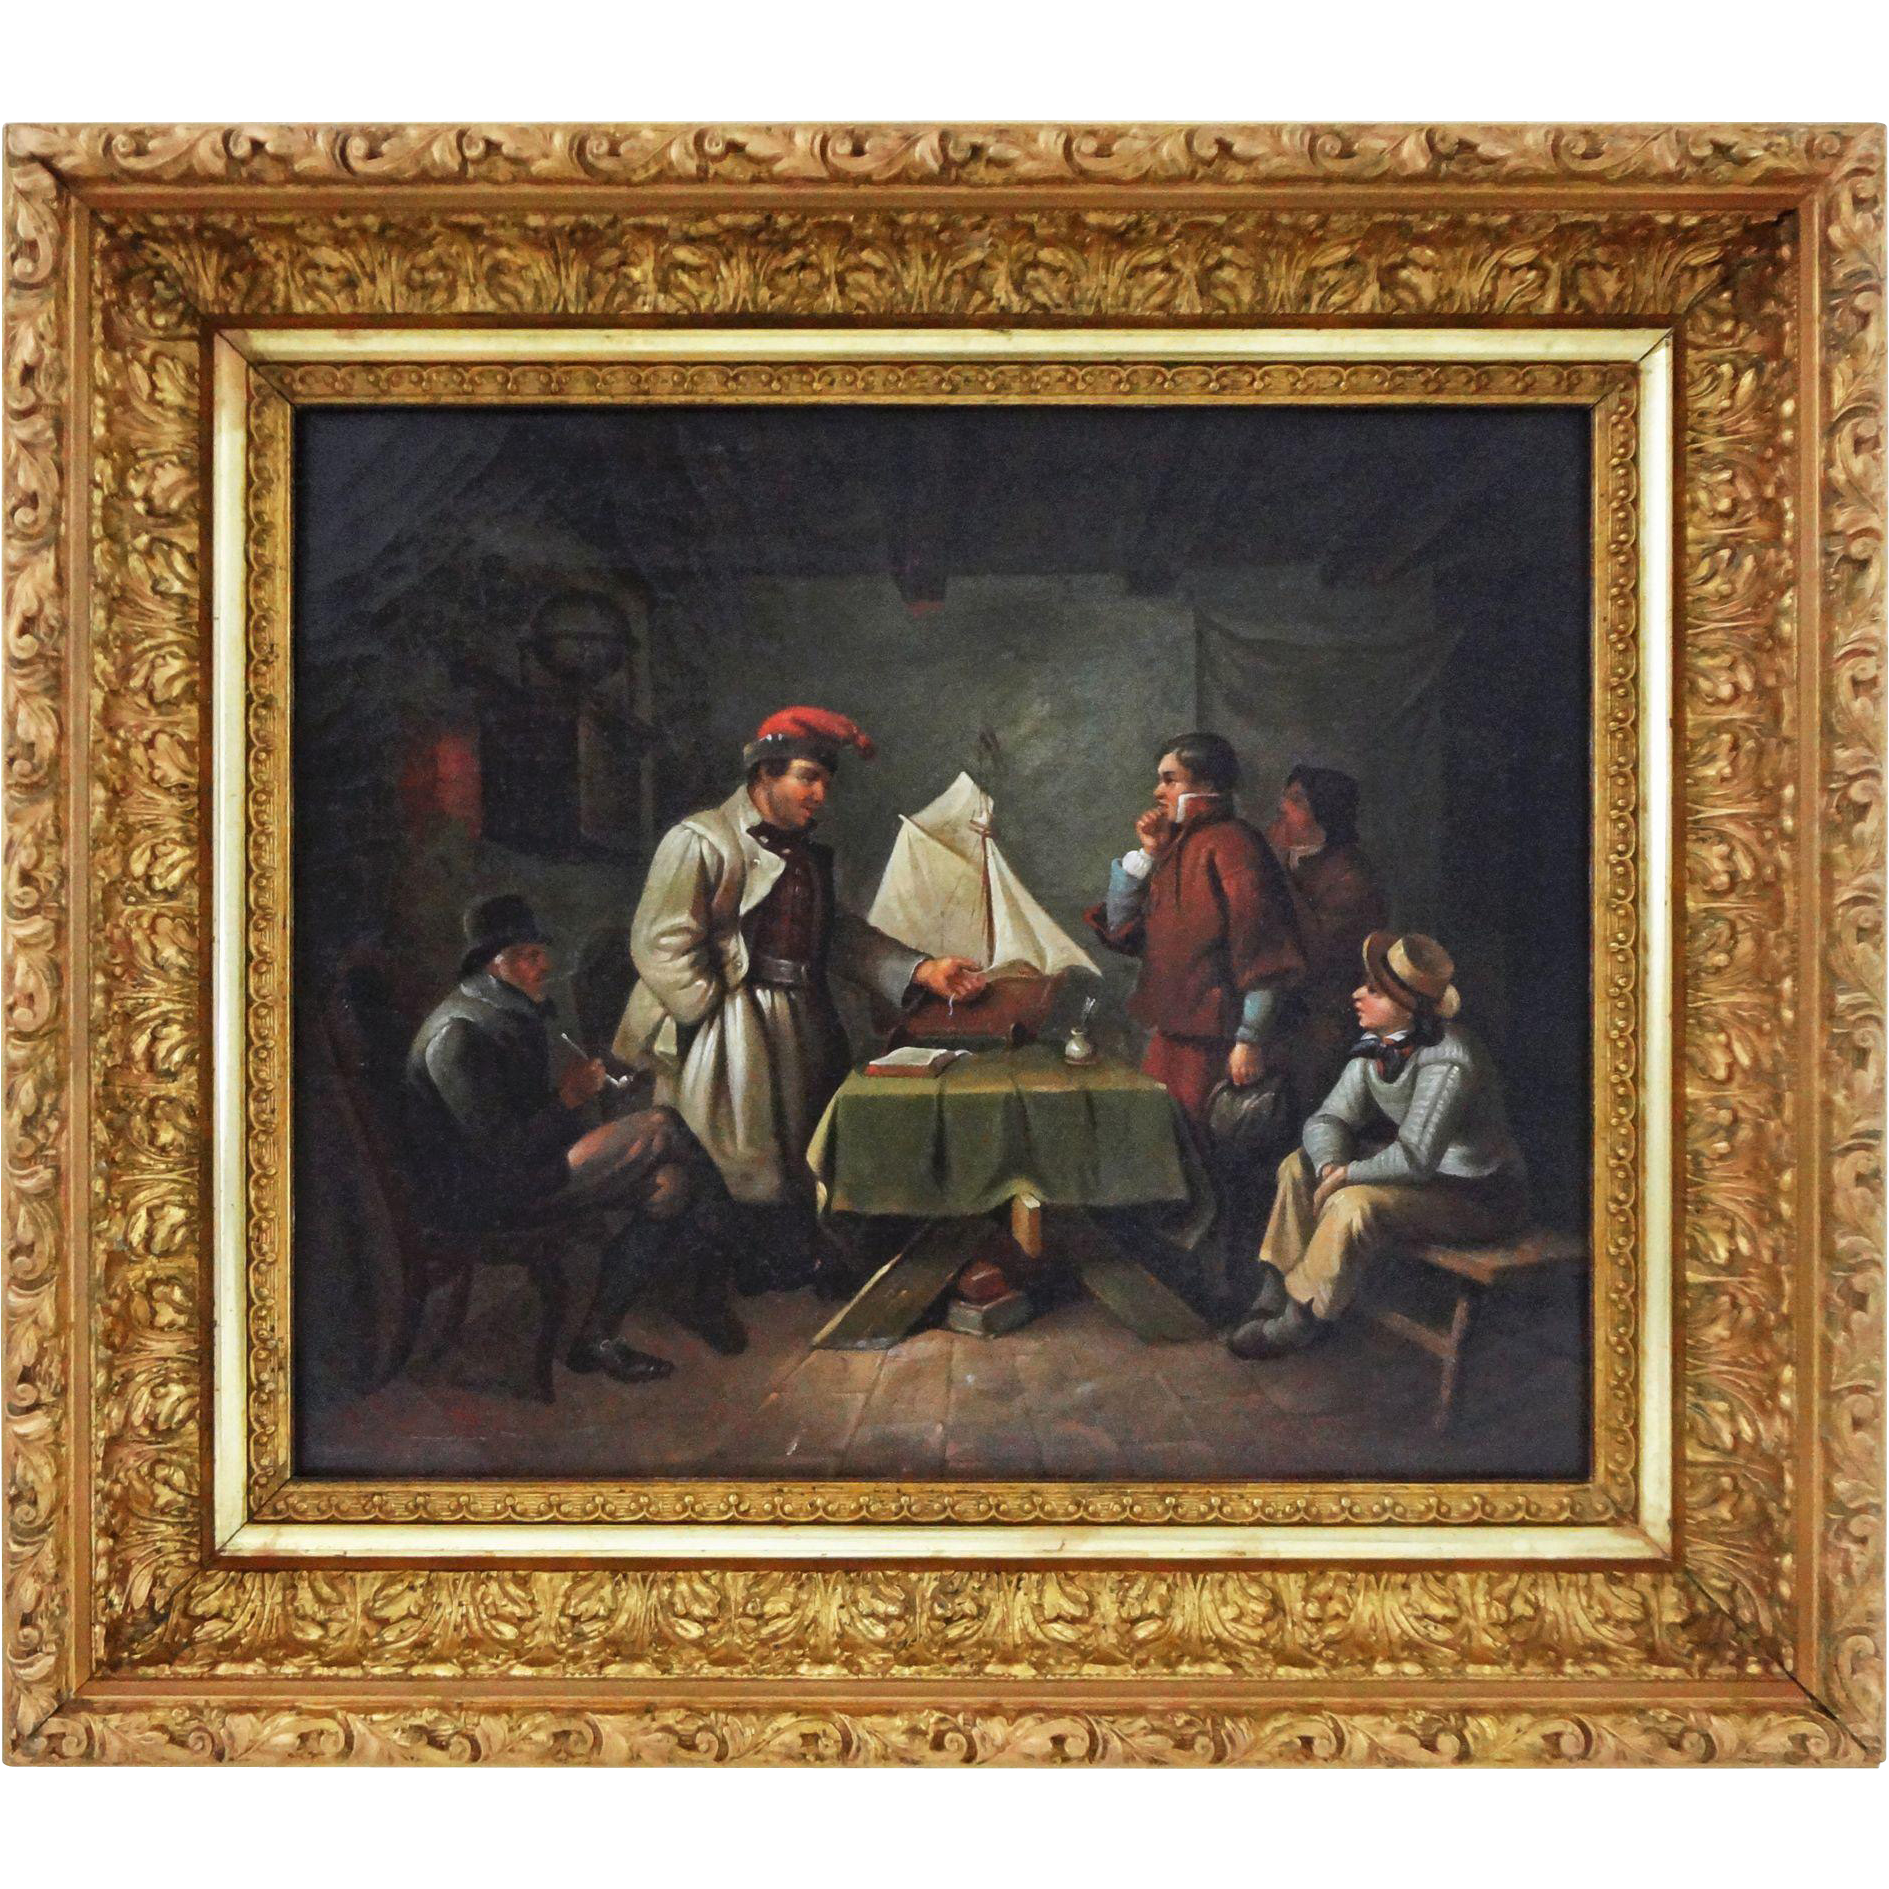 Oil on Canvas German Genre Painting The Pilot Exam  ( Das Lotsen-Examen ) - 19th Century, Germany